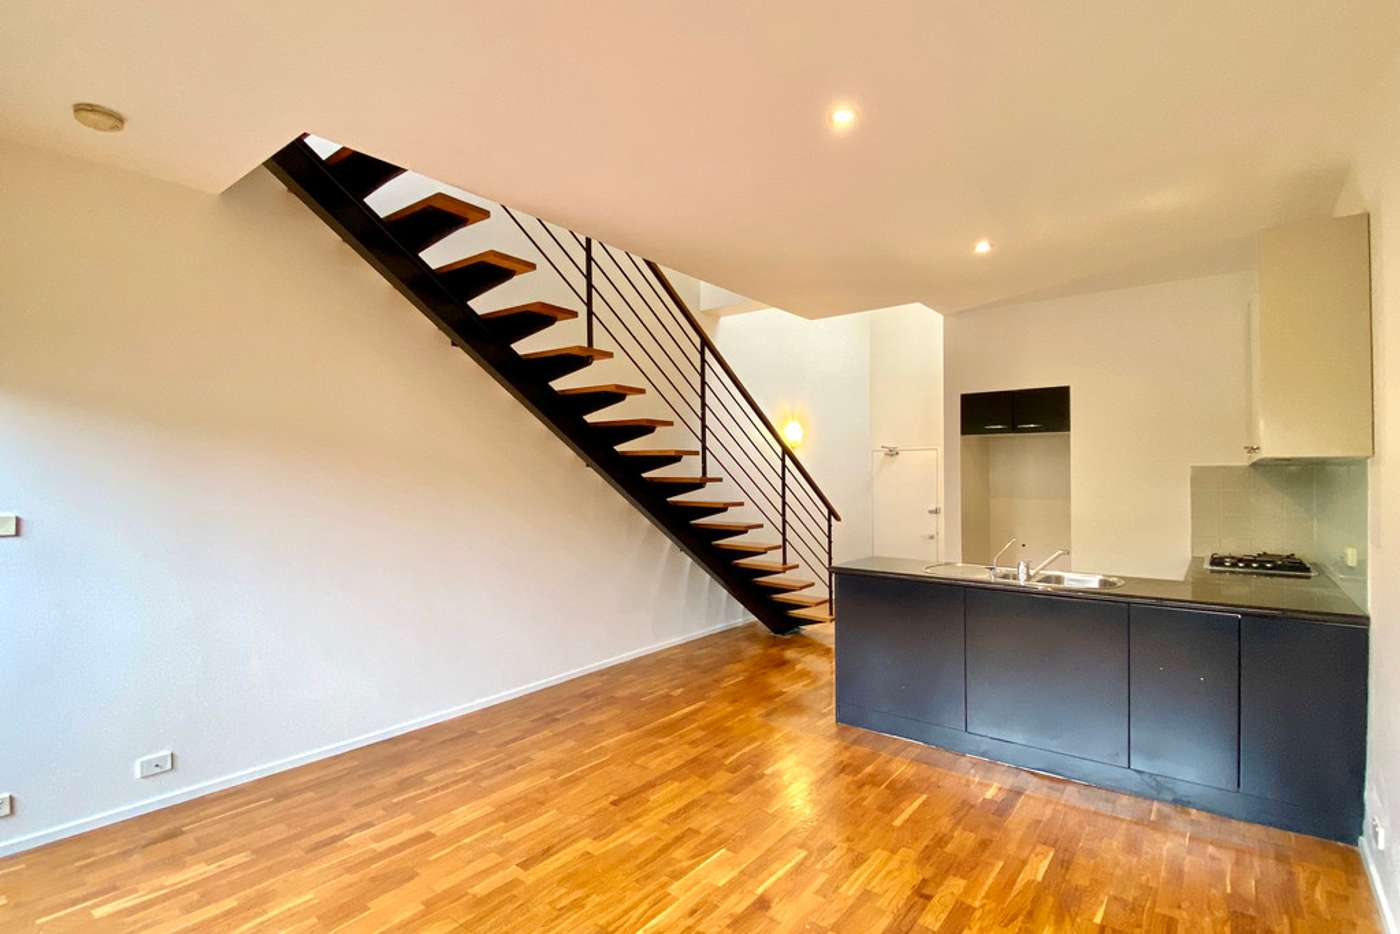 Main view of Homely unit listing, 14/8-14 Dunblane Street, Camperdown NSW 2050